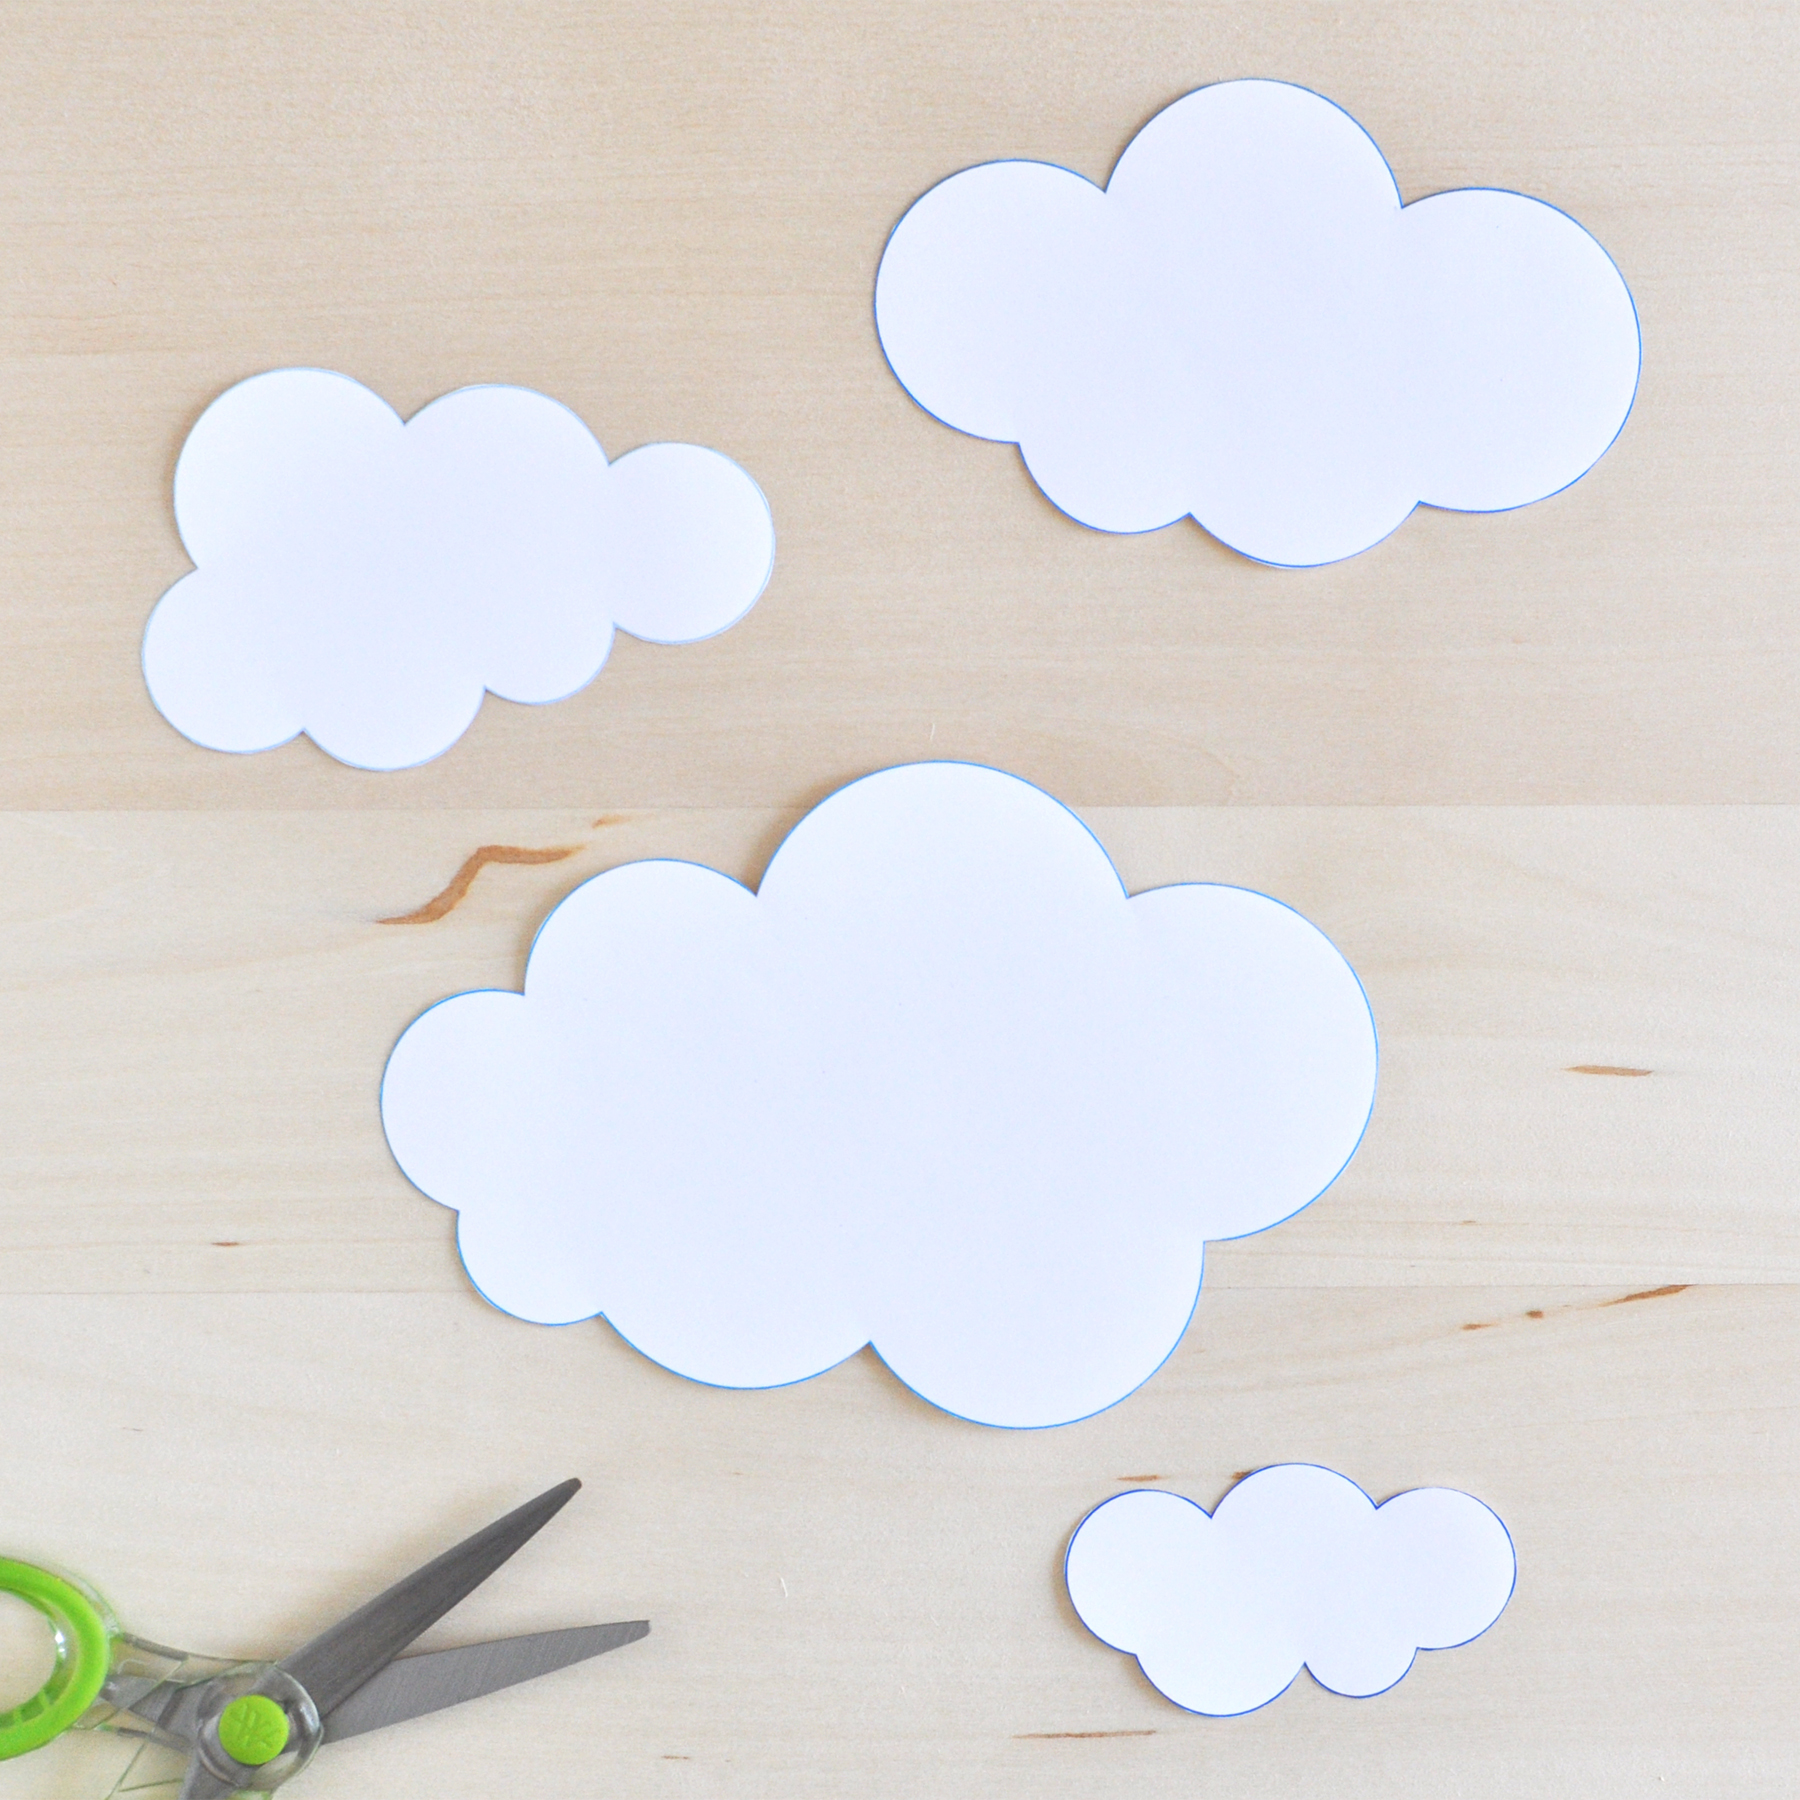 Make-Your-Own-Mini-Cloud-Journal---Image3.jpg